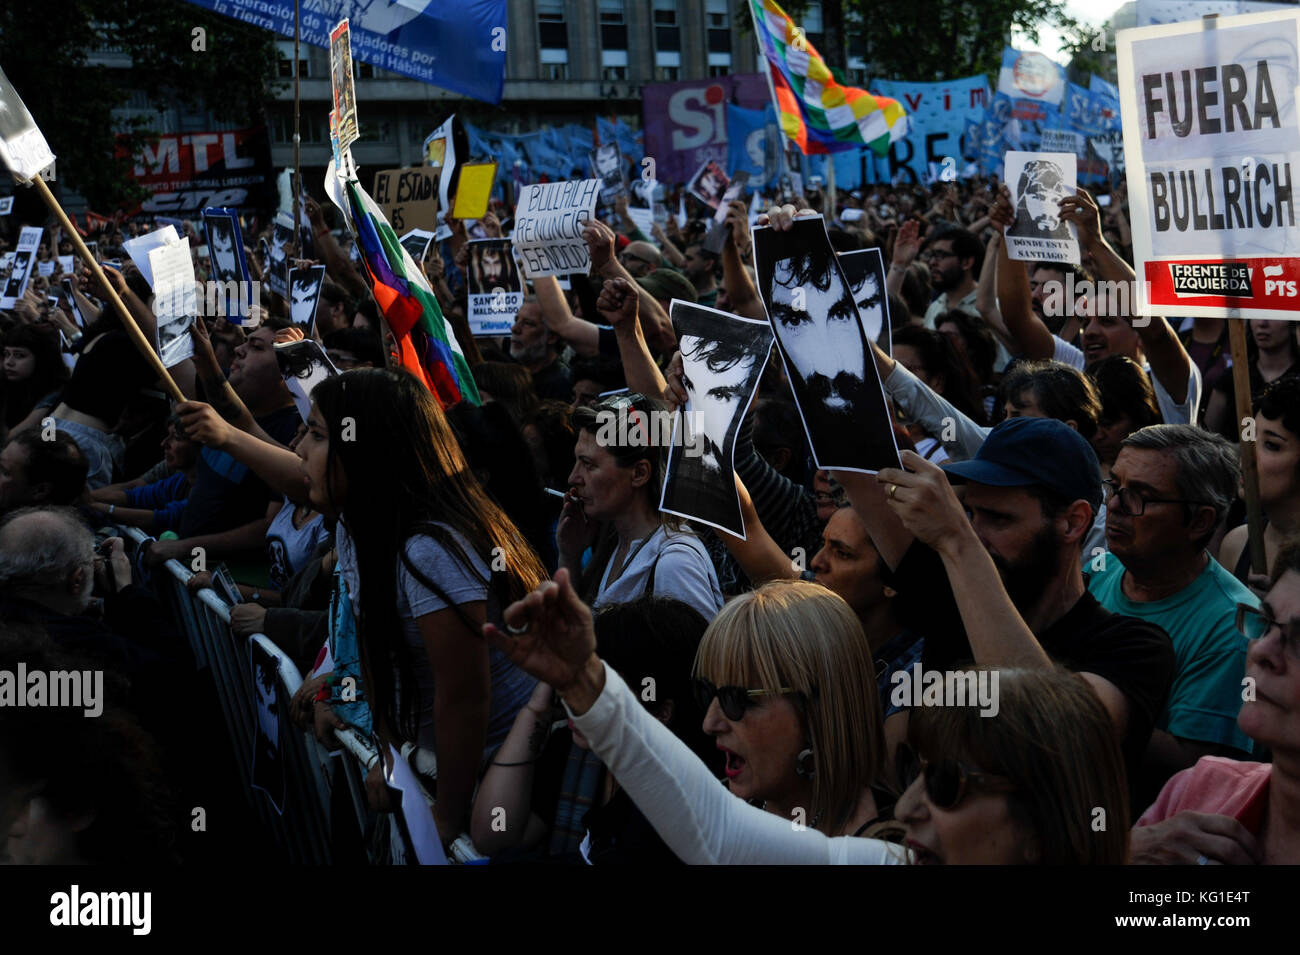 BUENOS AIRES, AR - 01.11.2017: MARCHA PELA JUSTIÇA POR SANTIAGO MALDONADO - Protesters during a march to demand - Stock Image